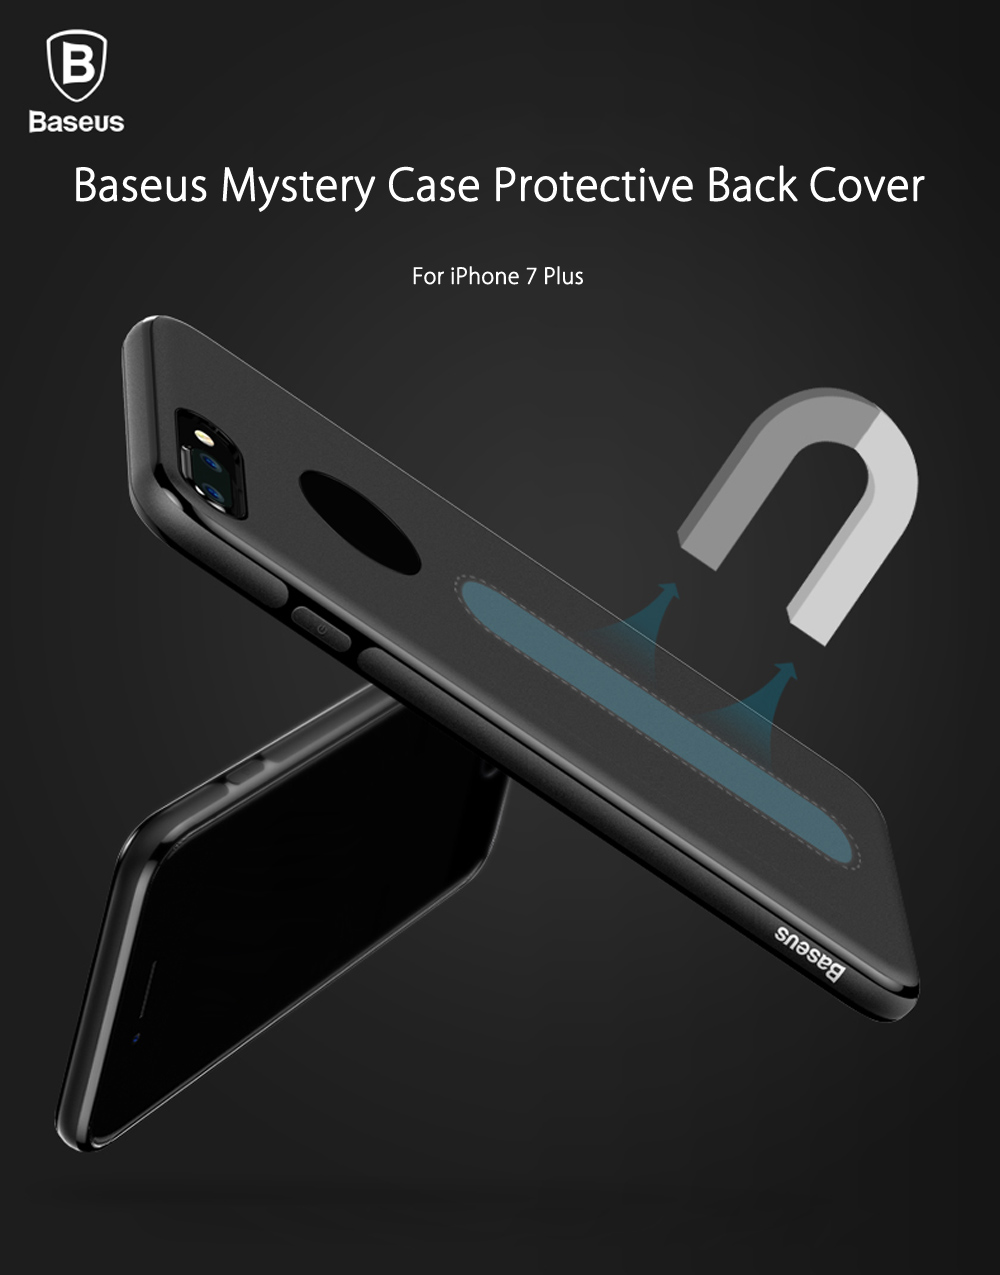 Baseus Mastery Case Magnetic Protective Cover Skin for iPhone 7 Plus 5.5 inch